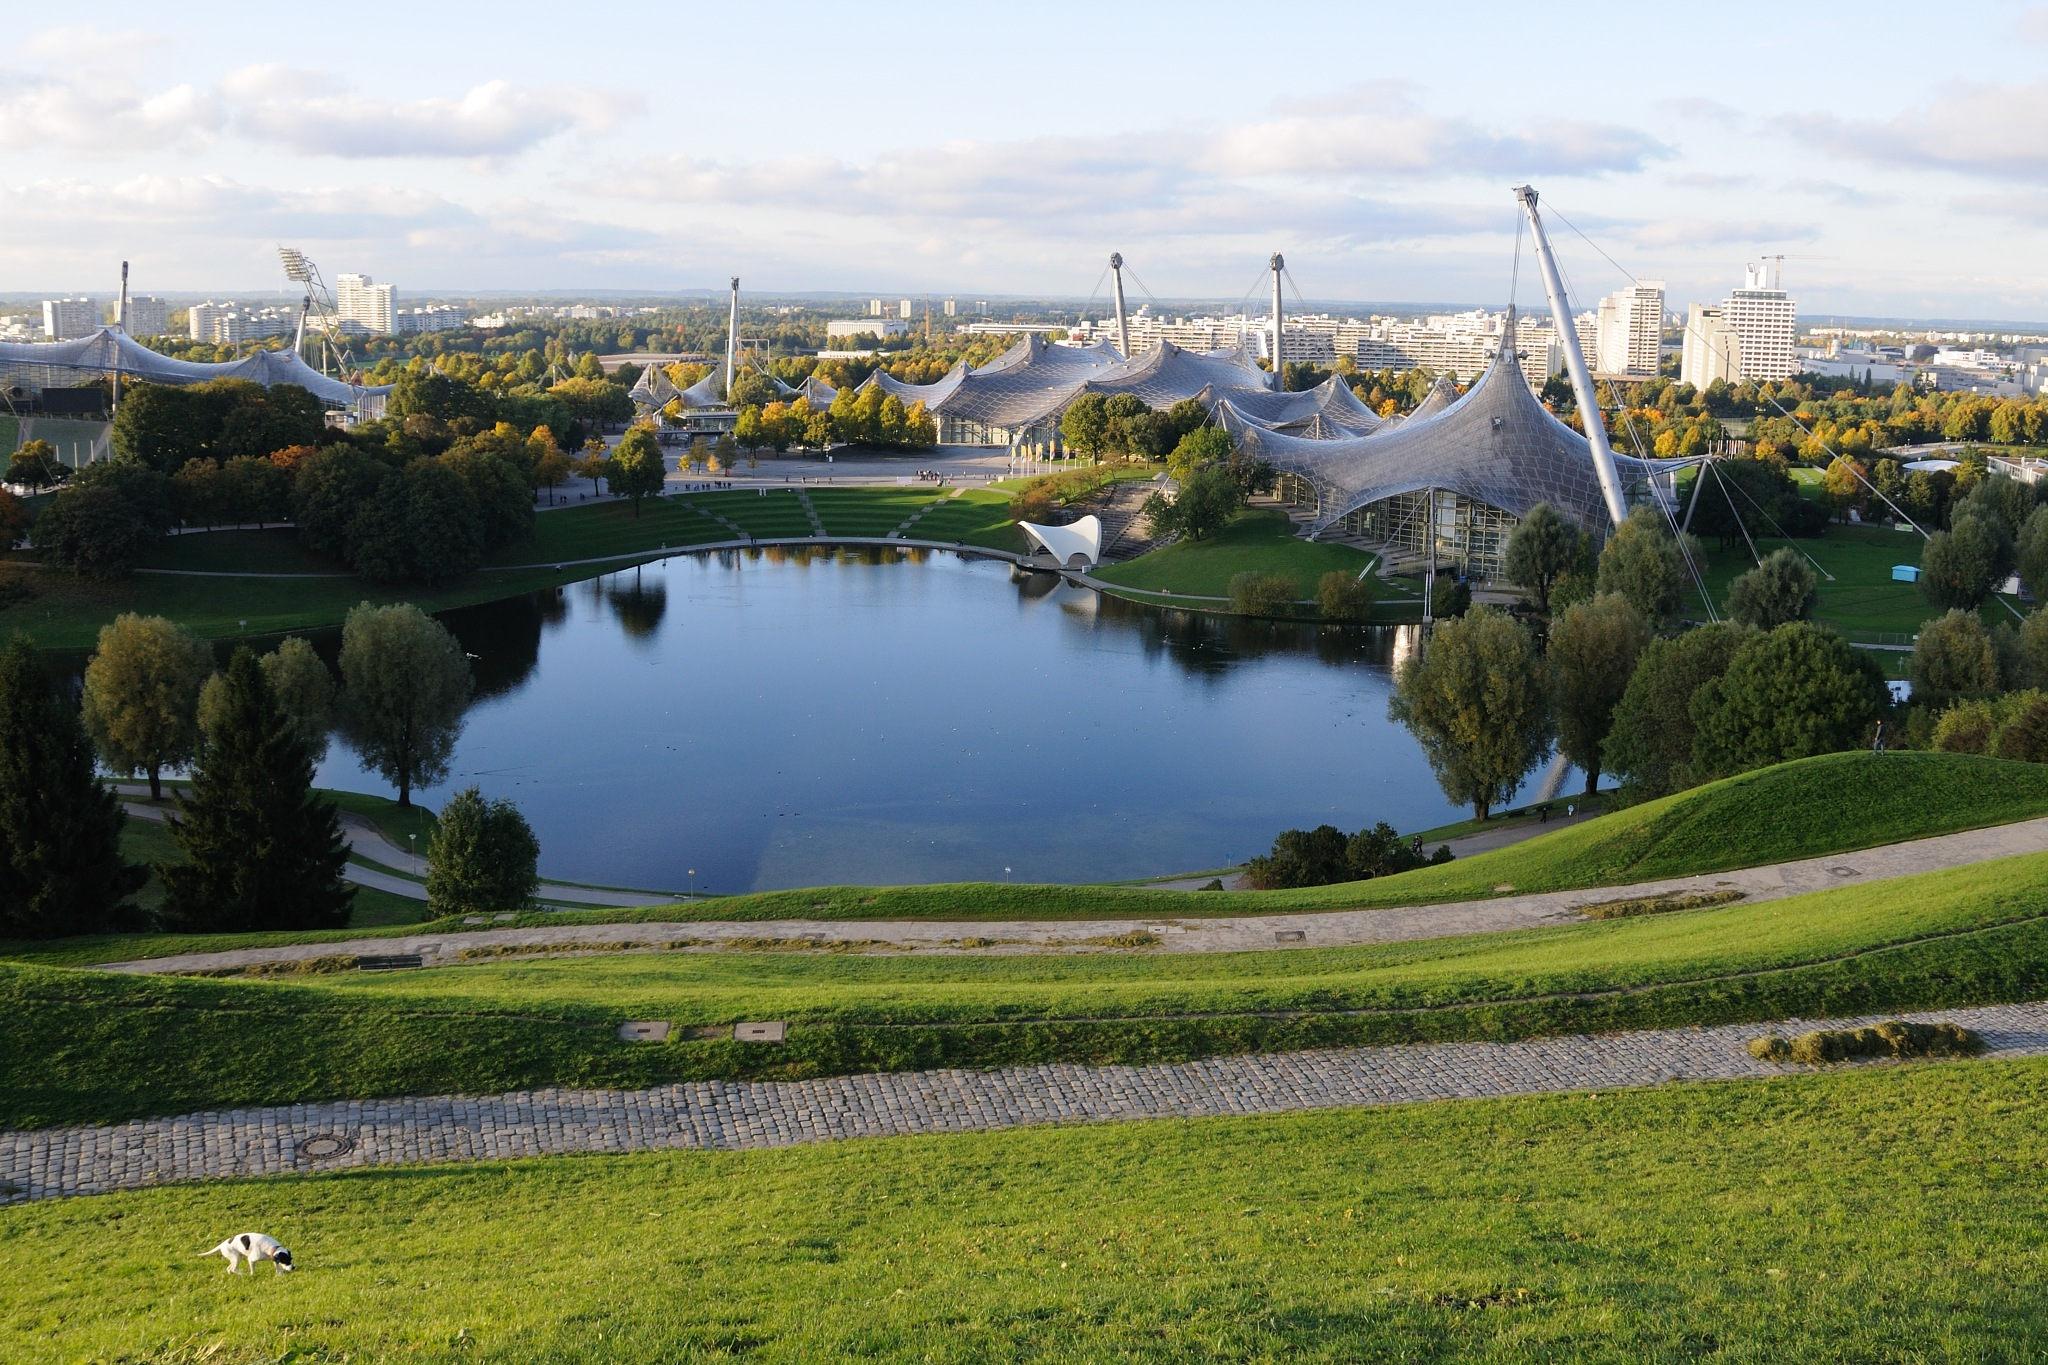 Small white dog in the Olympic park by Zdenek Krchak